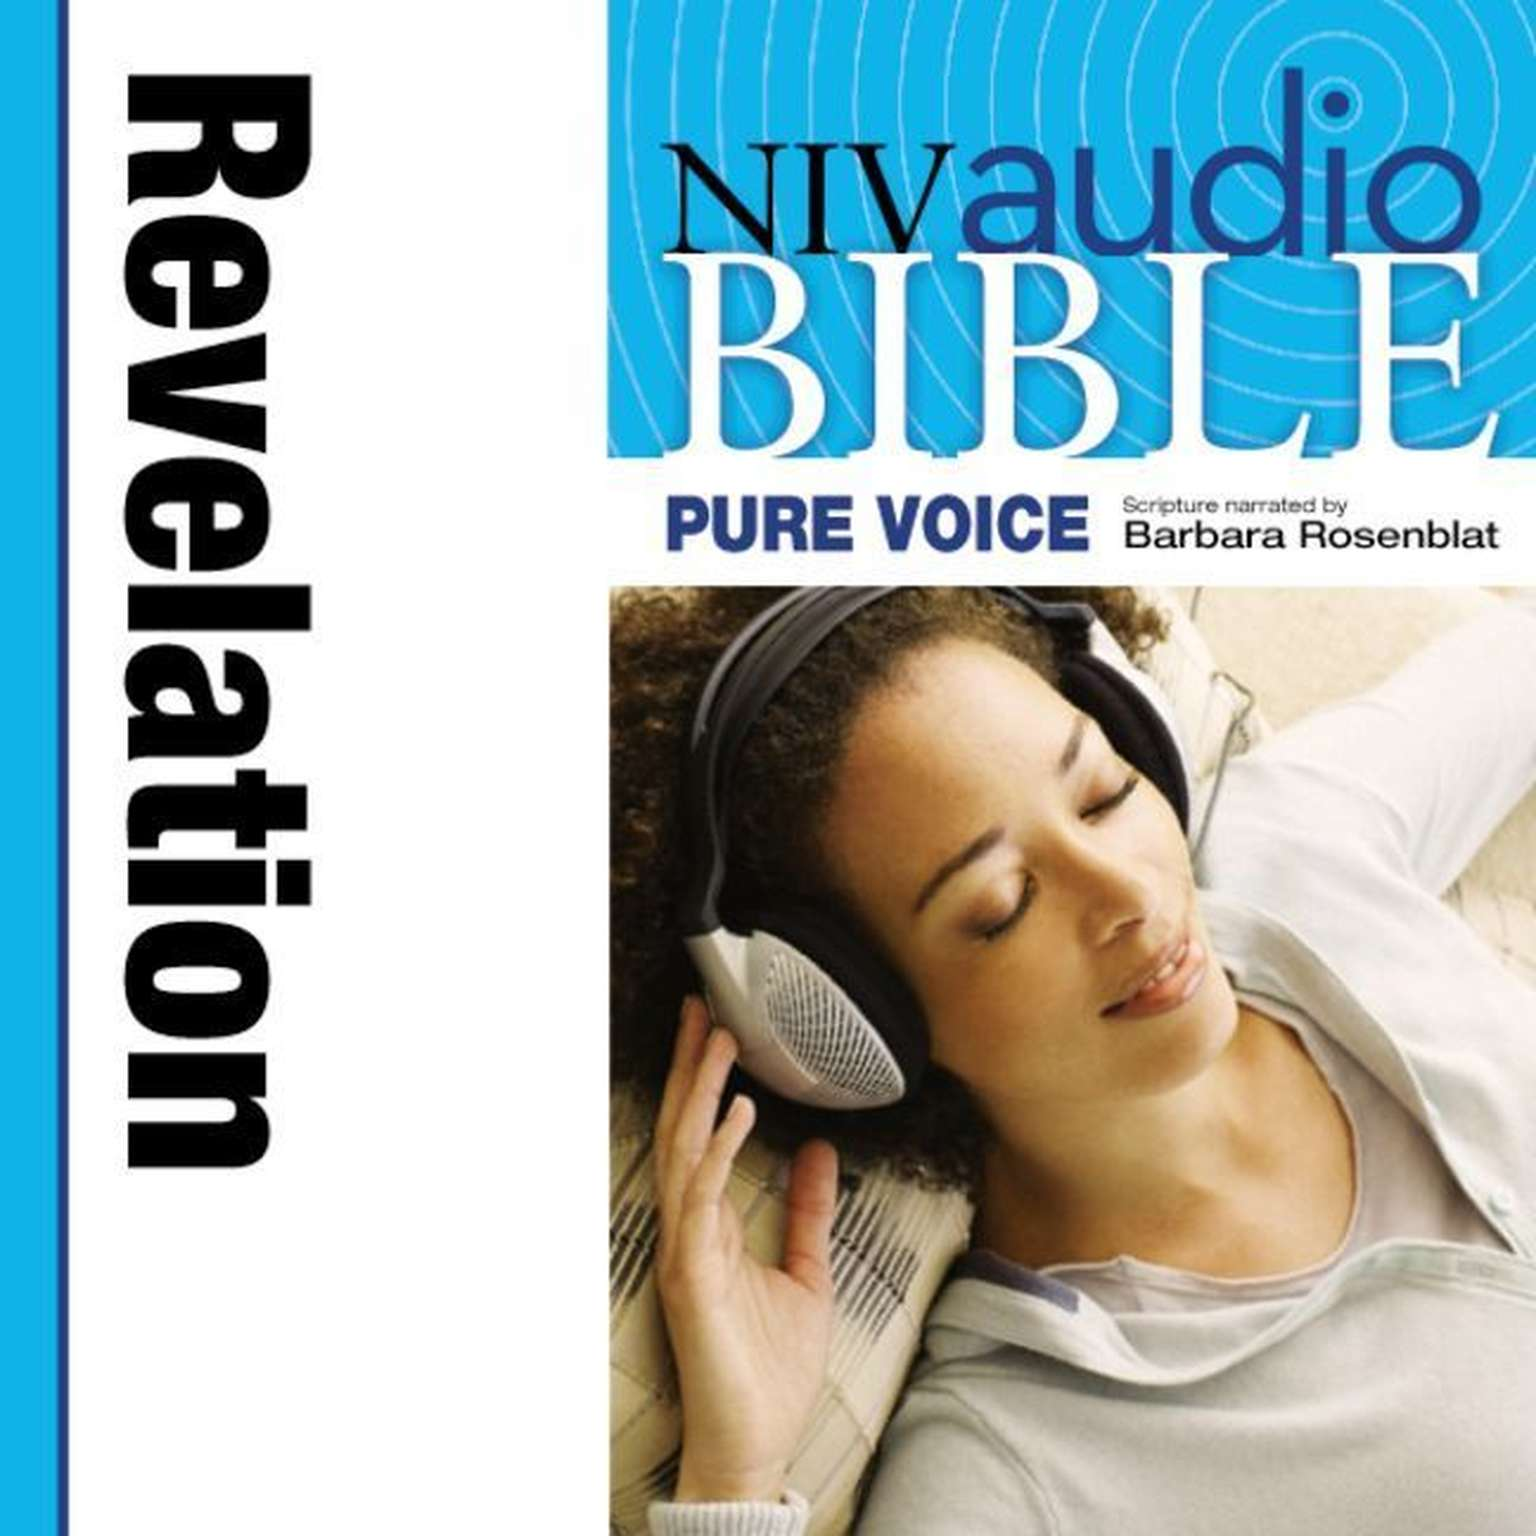 Printable NIV, Audio Bible, Pure Voice: Revelation, Audio Download (Narrated by Barbara Rosenblat) Audiobook Cover Art